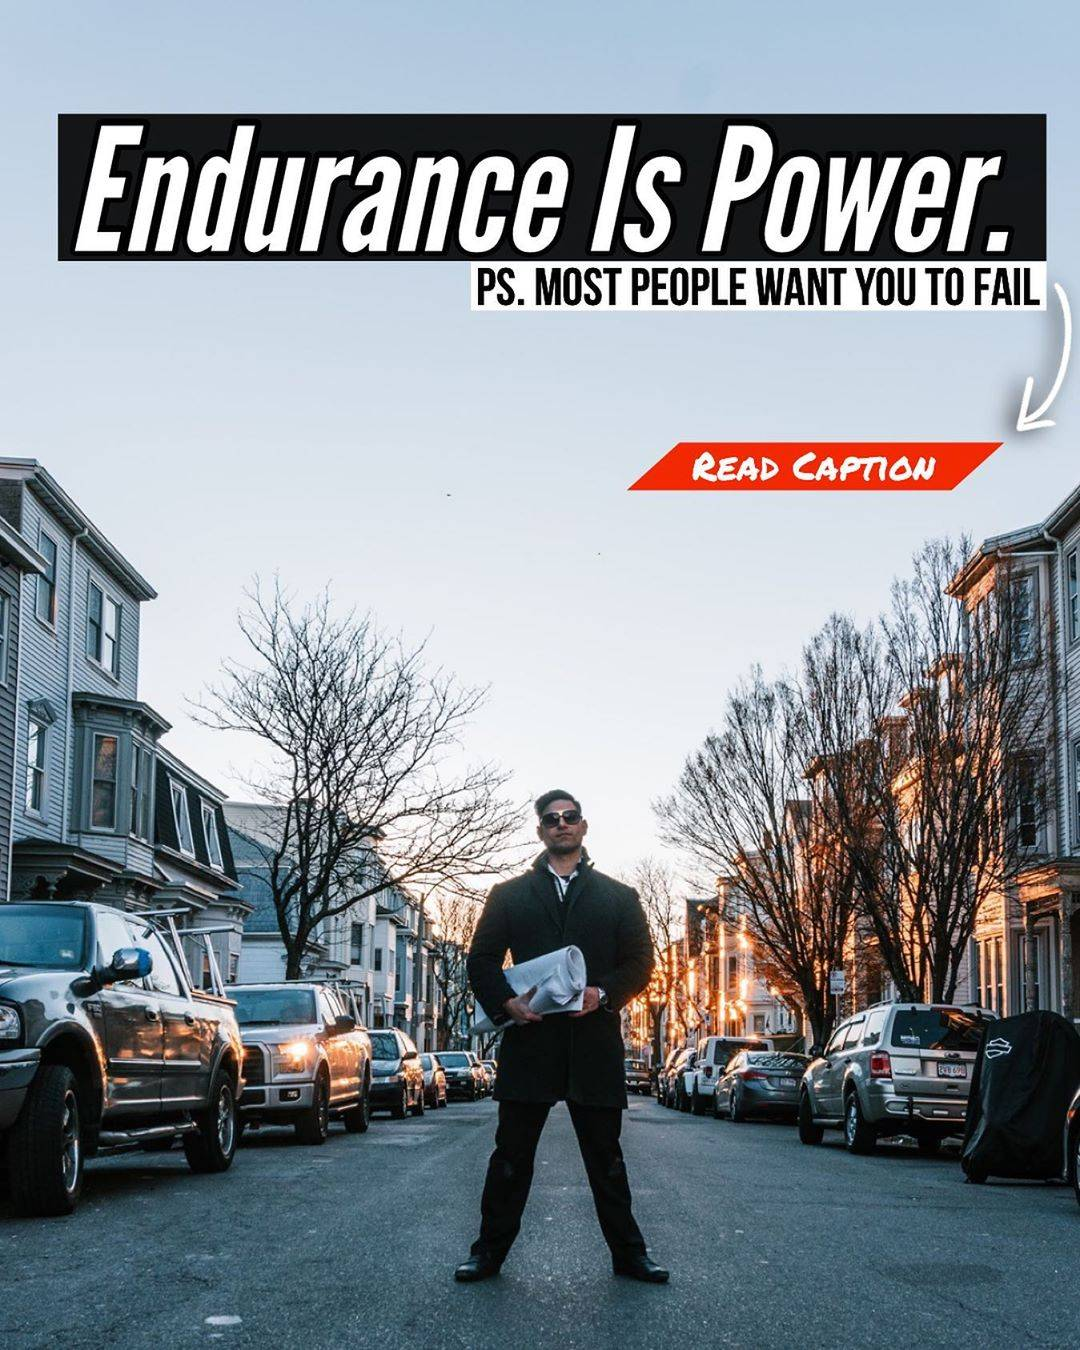 Endurance Is Power. Most People Want You To Fail